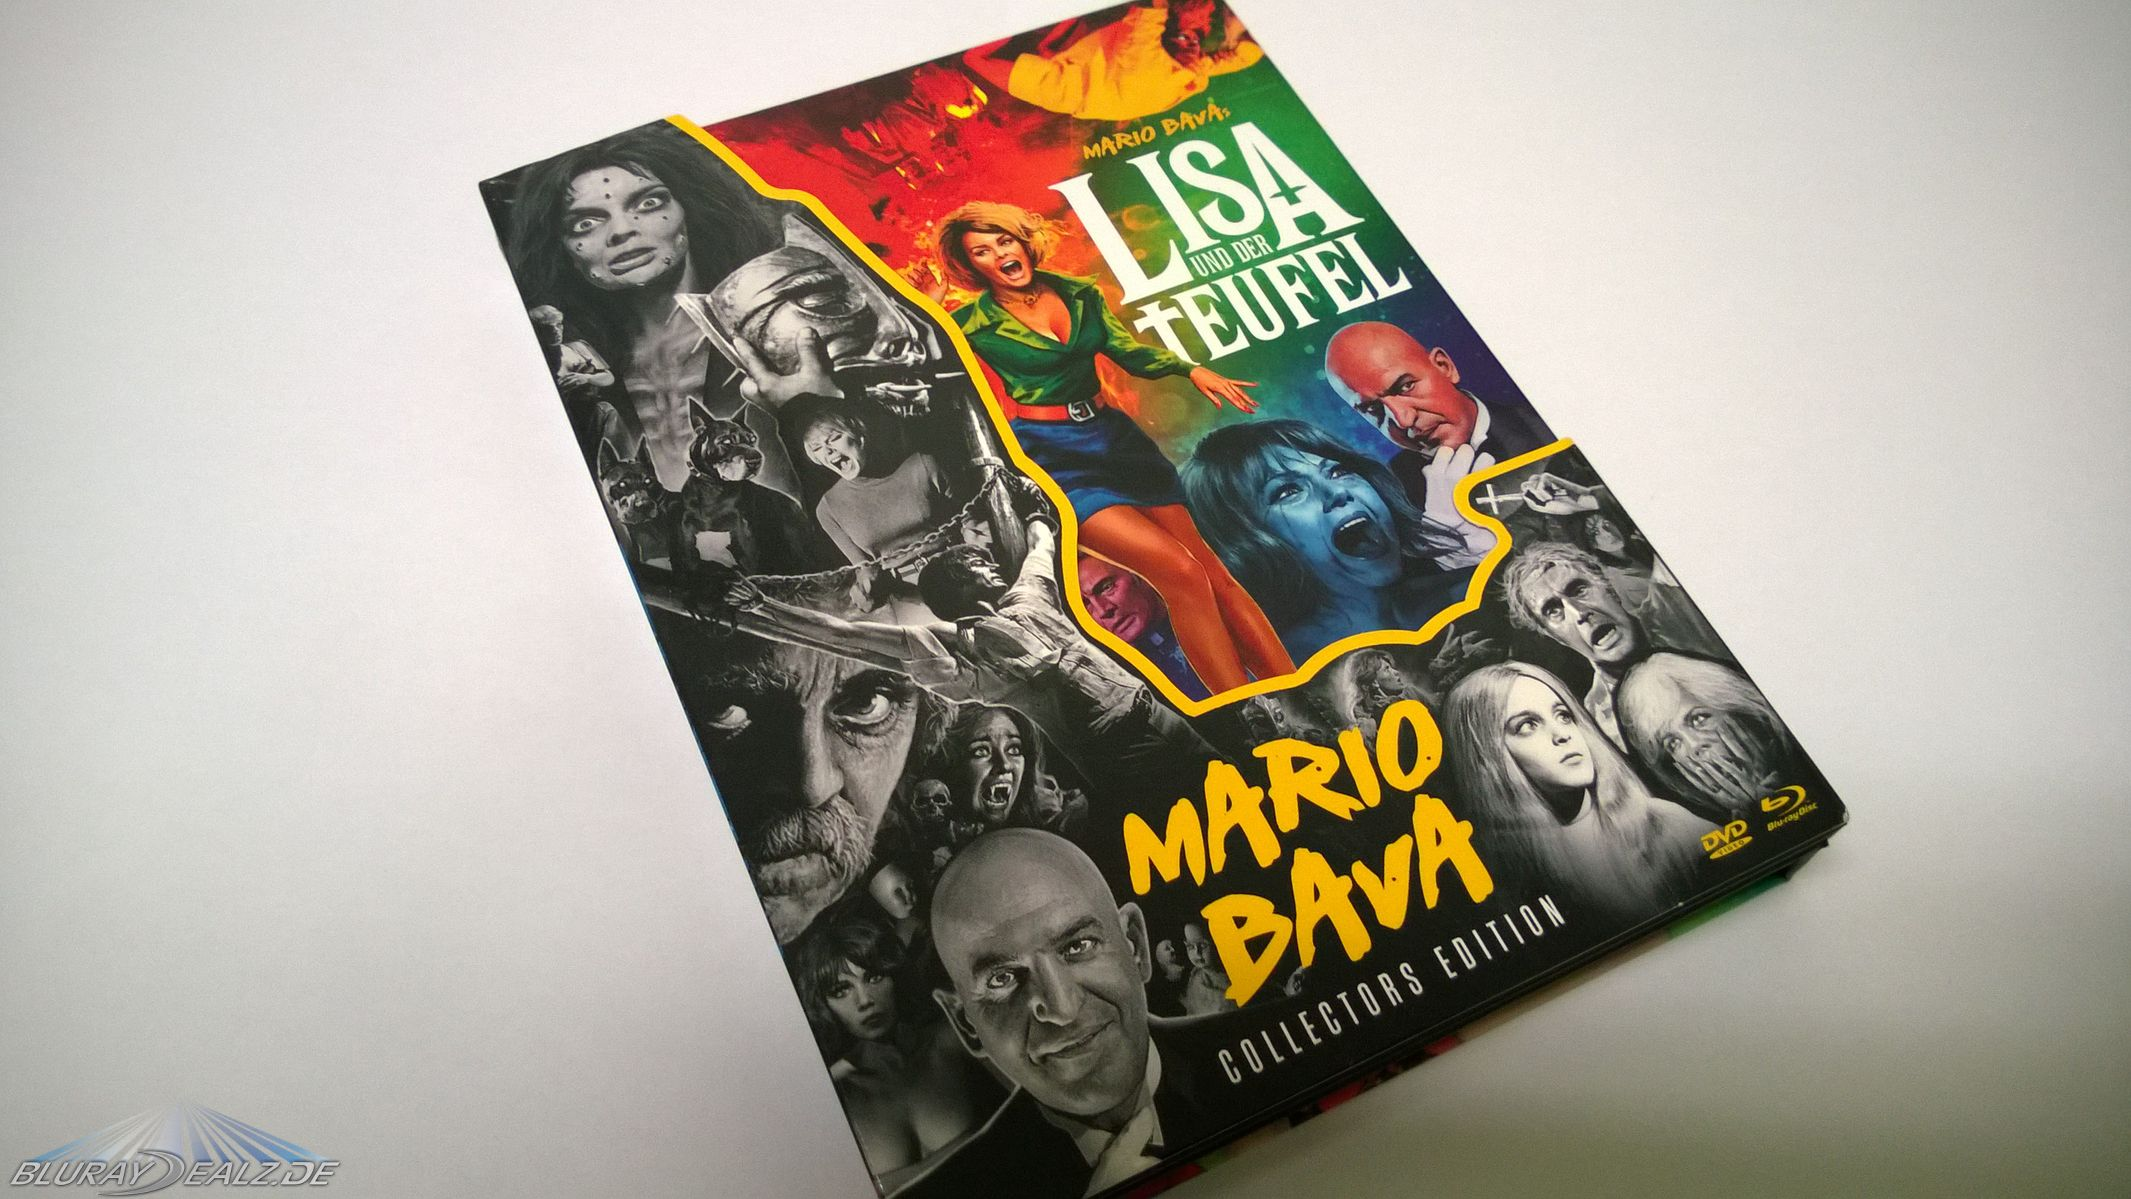 Fotos] Lisa und der Teufel – Mario Bava-Collection #2 (Collector\'s ...